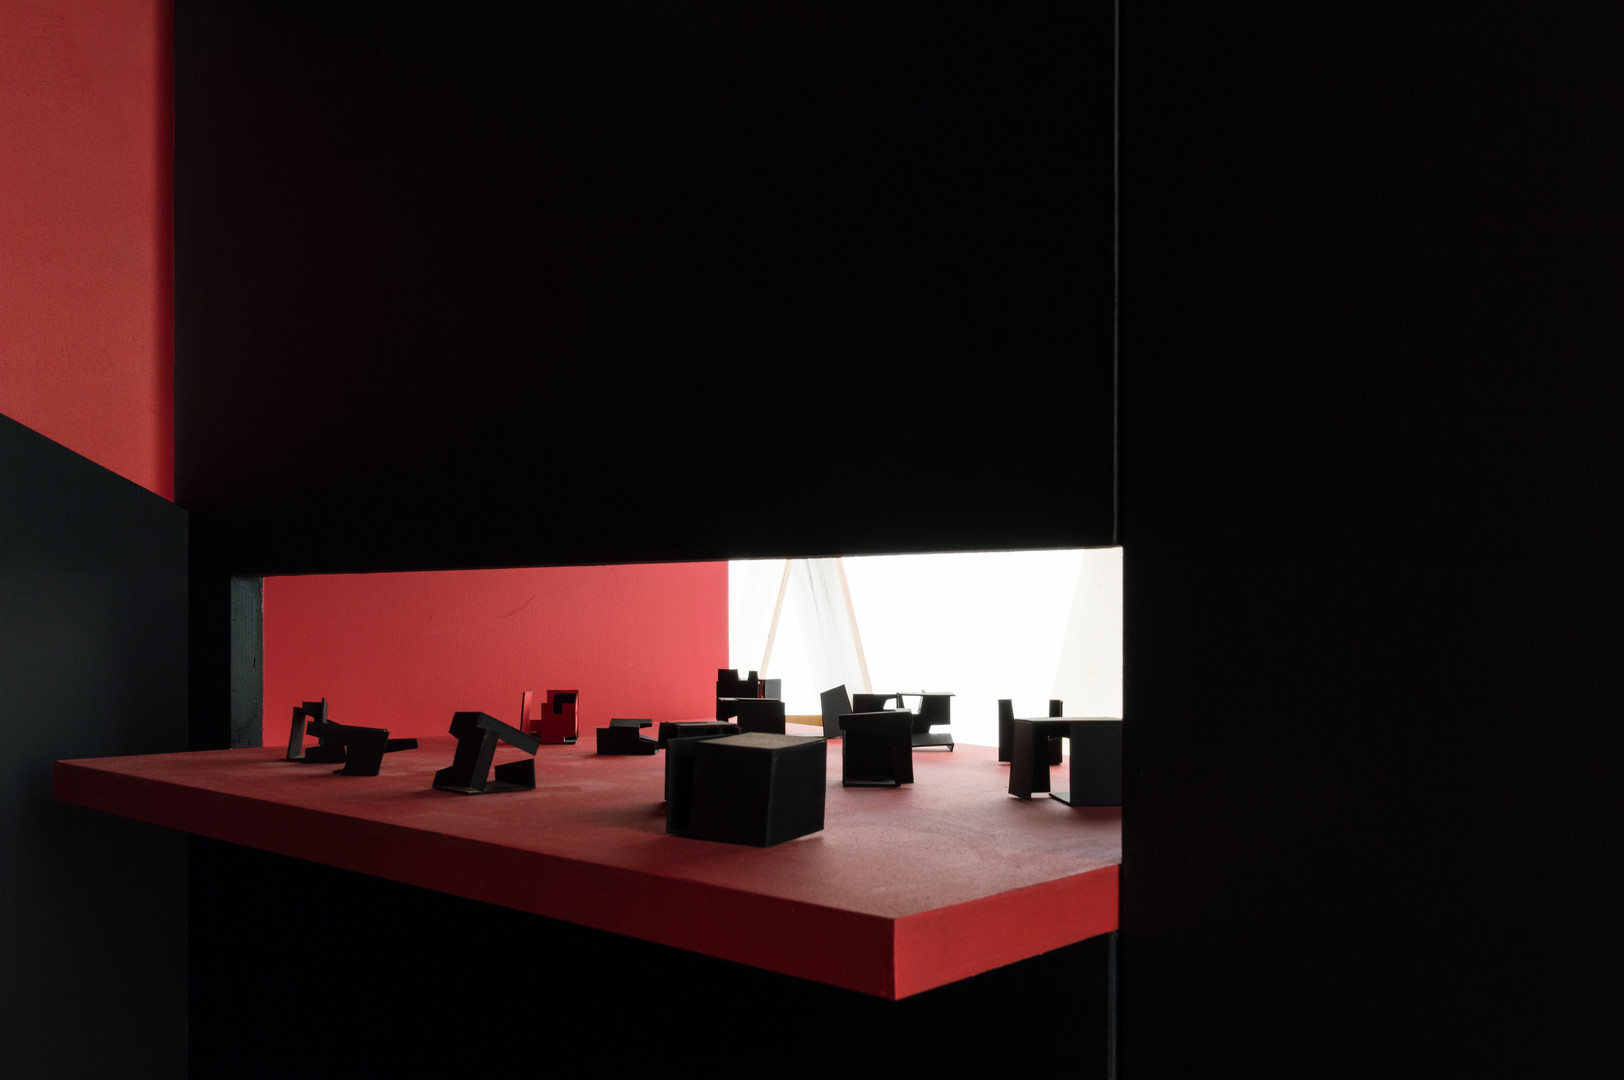 Models inside the black and red pavilion designed by A2 Architects at the Venice Biennale 2018